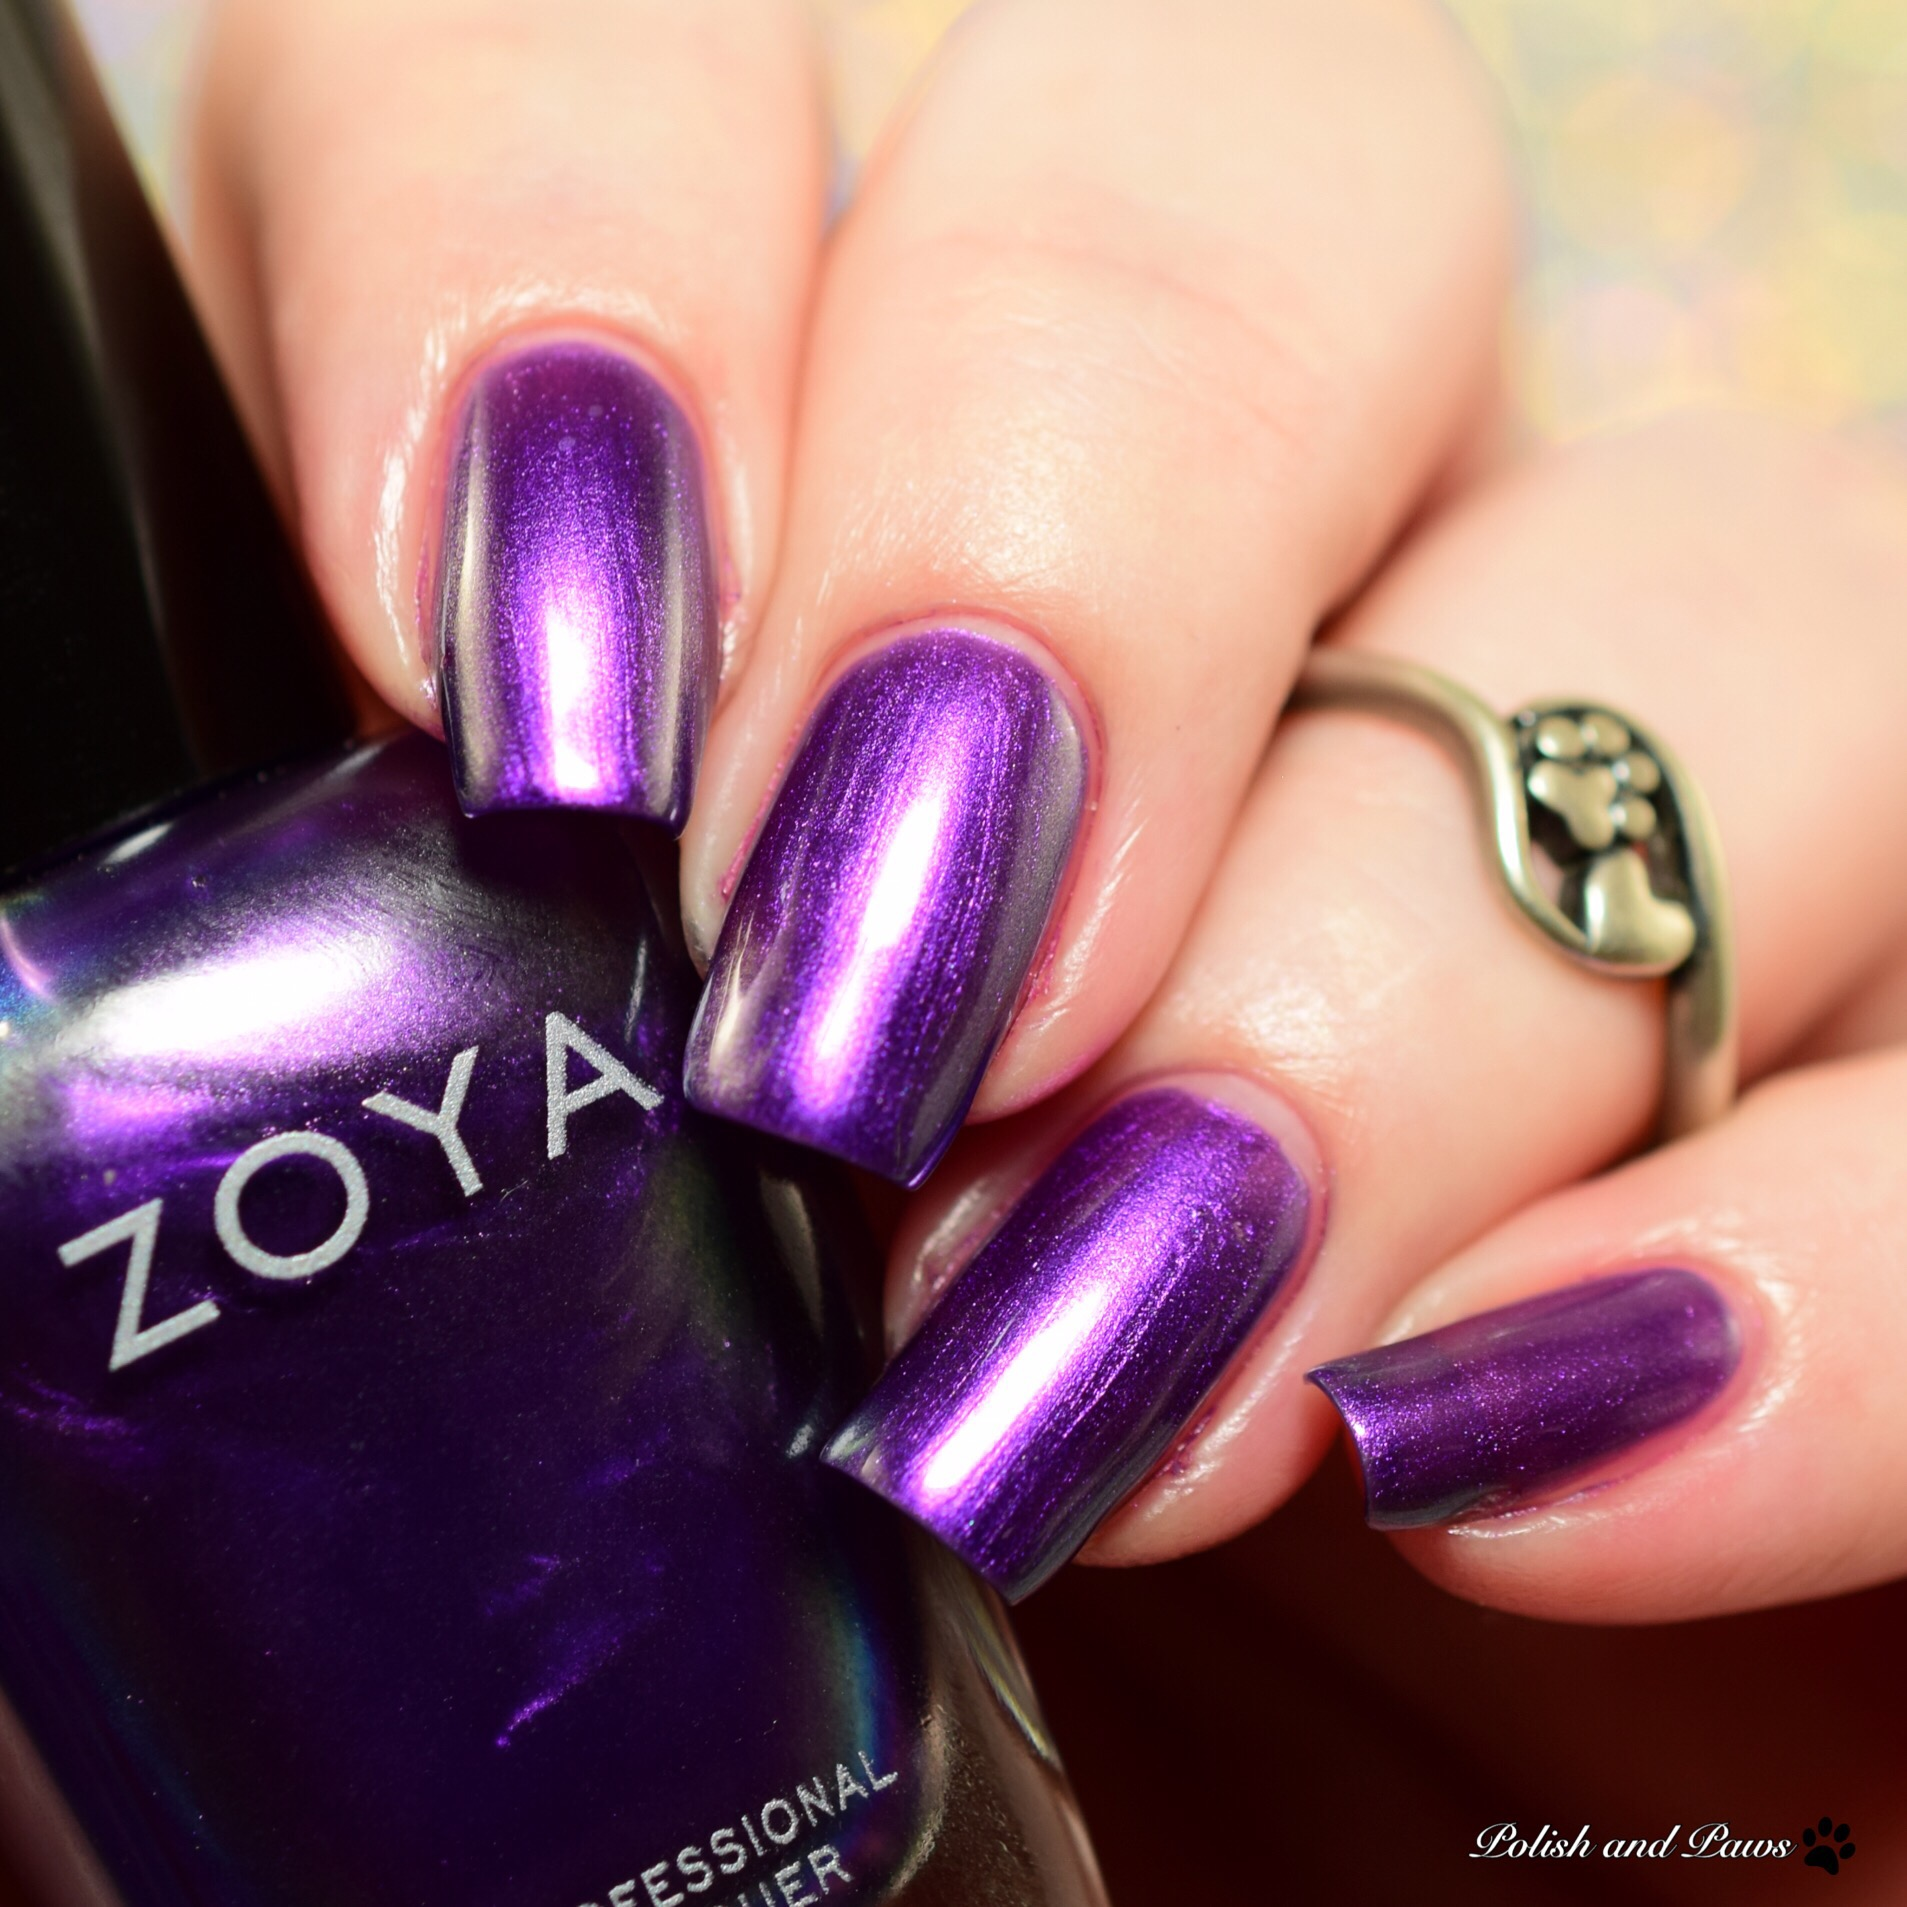 Zoya Party Girls Holiday Winter 2017 Polish And Paws